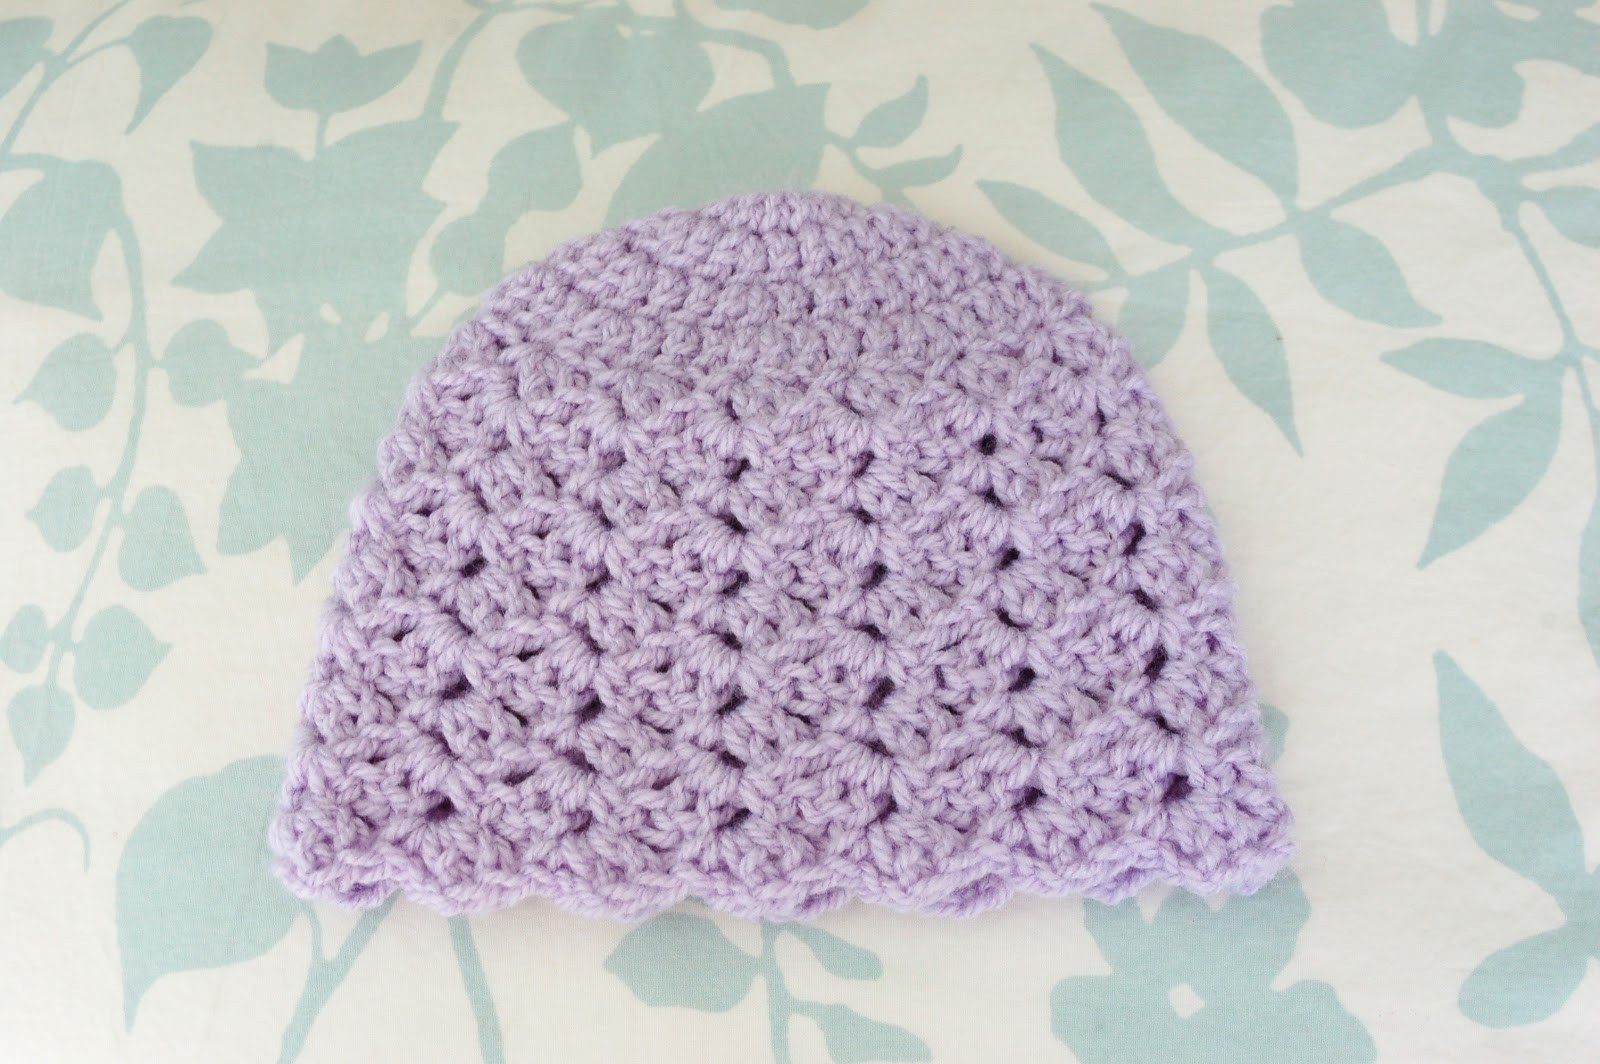 Beautiful Alli Crafts Free Pattern Tulip Stitch Hat Newborn Free Crochet Infant Hat Patterns Of Luxury Baby Hat Crochet Pattern Modern Homemakers Free Crochet Infant Hat Patterns